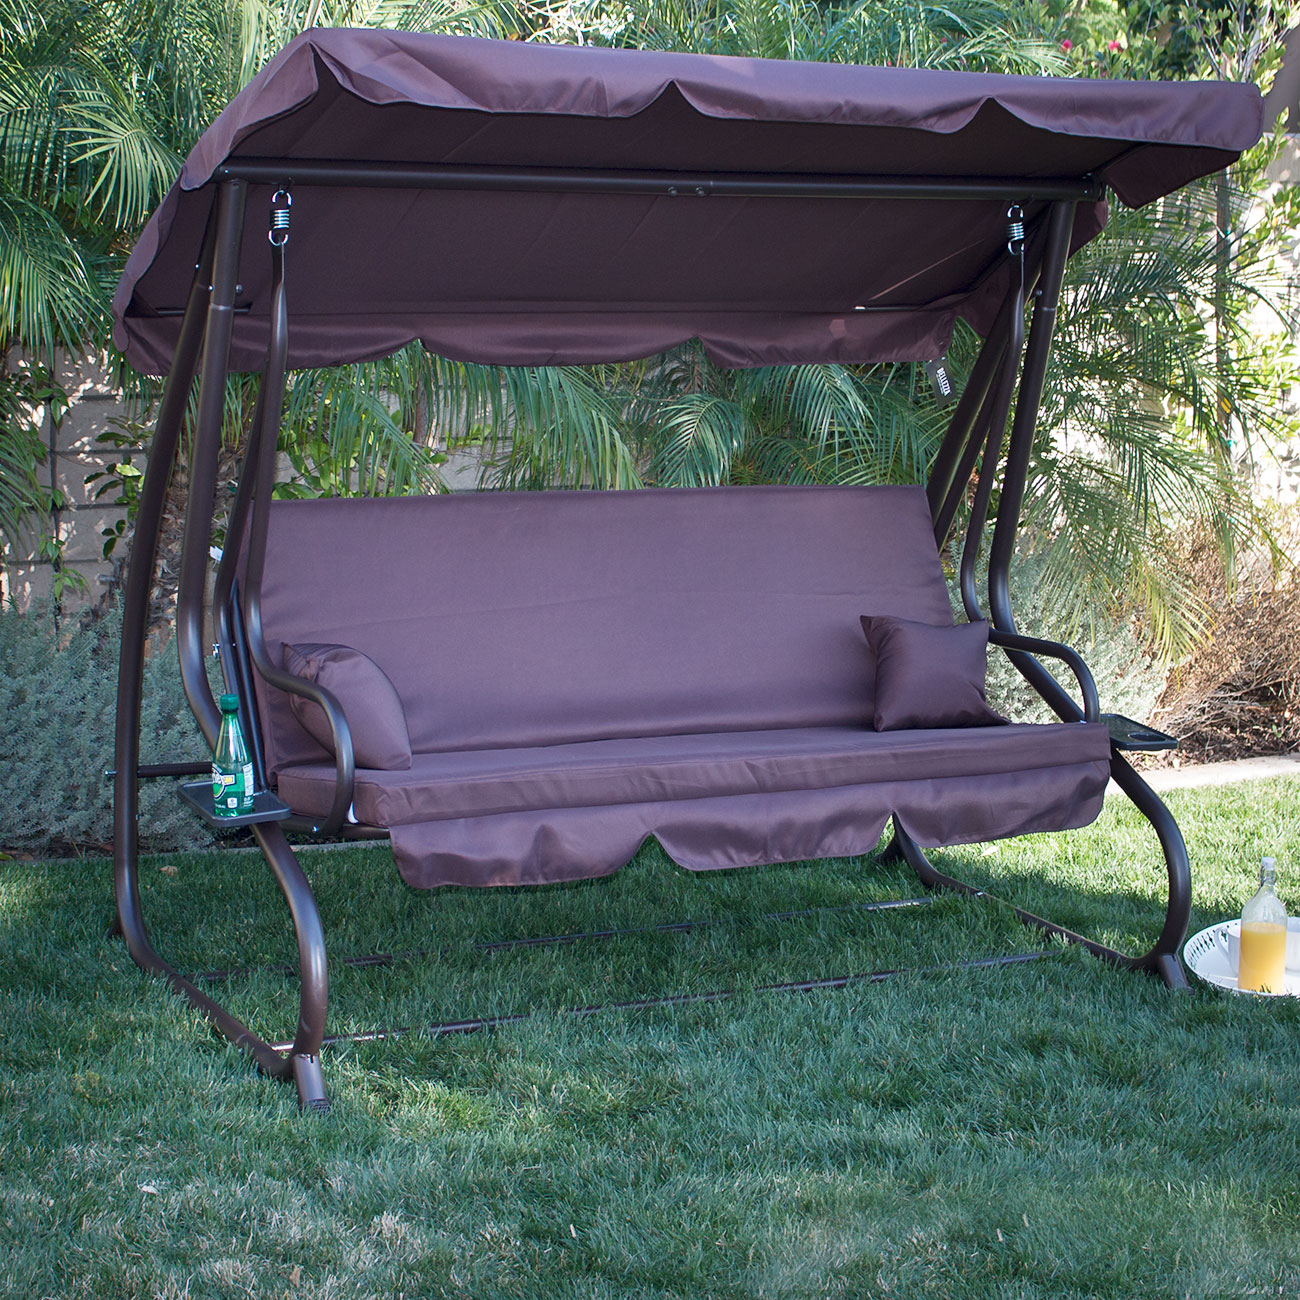 Belleze Patio Outdoor Padded Porch Swing Bed with Adjustable Tilt Canopy, Dark Brown by Belleze